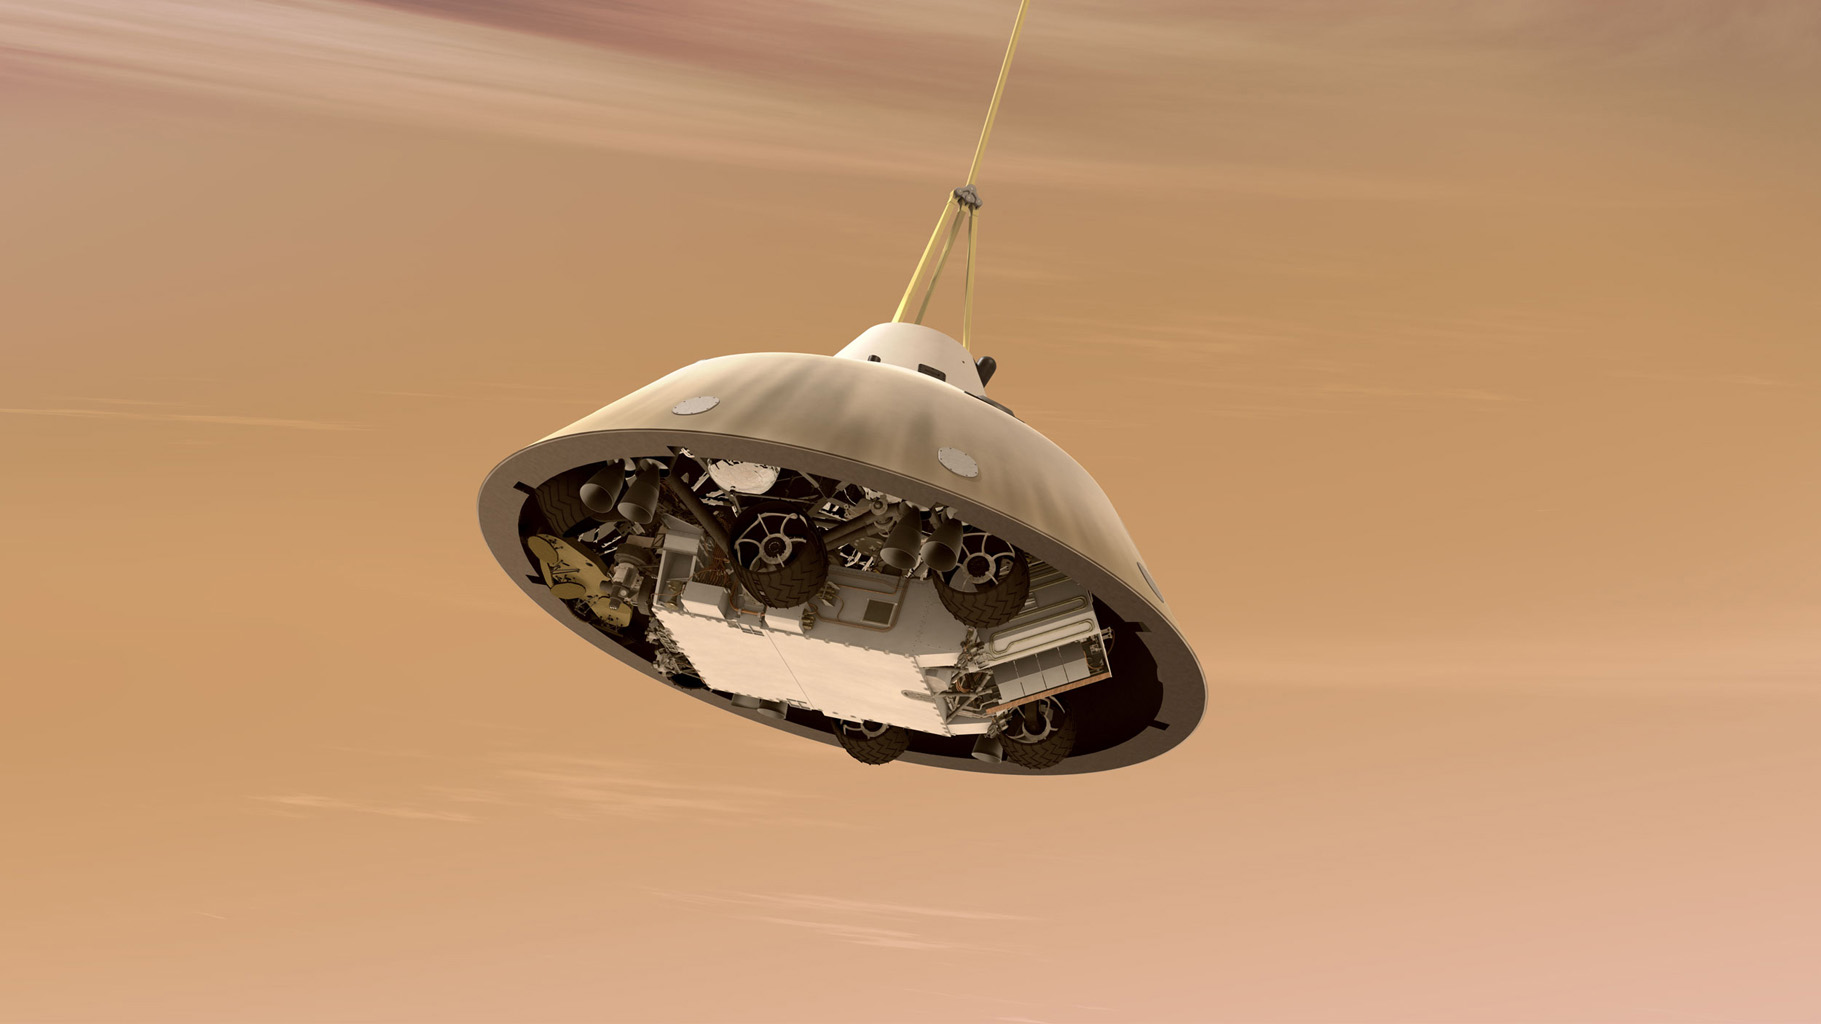 This artist's concept shows NASA's Curiosity rover tucked inside the Mars Science Laboratory spacecraft's backshell while the spacecraft is descending on a parachute toward Mars. Here, the spacecraft's heat shield has already been jettisoned.